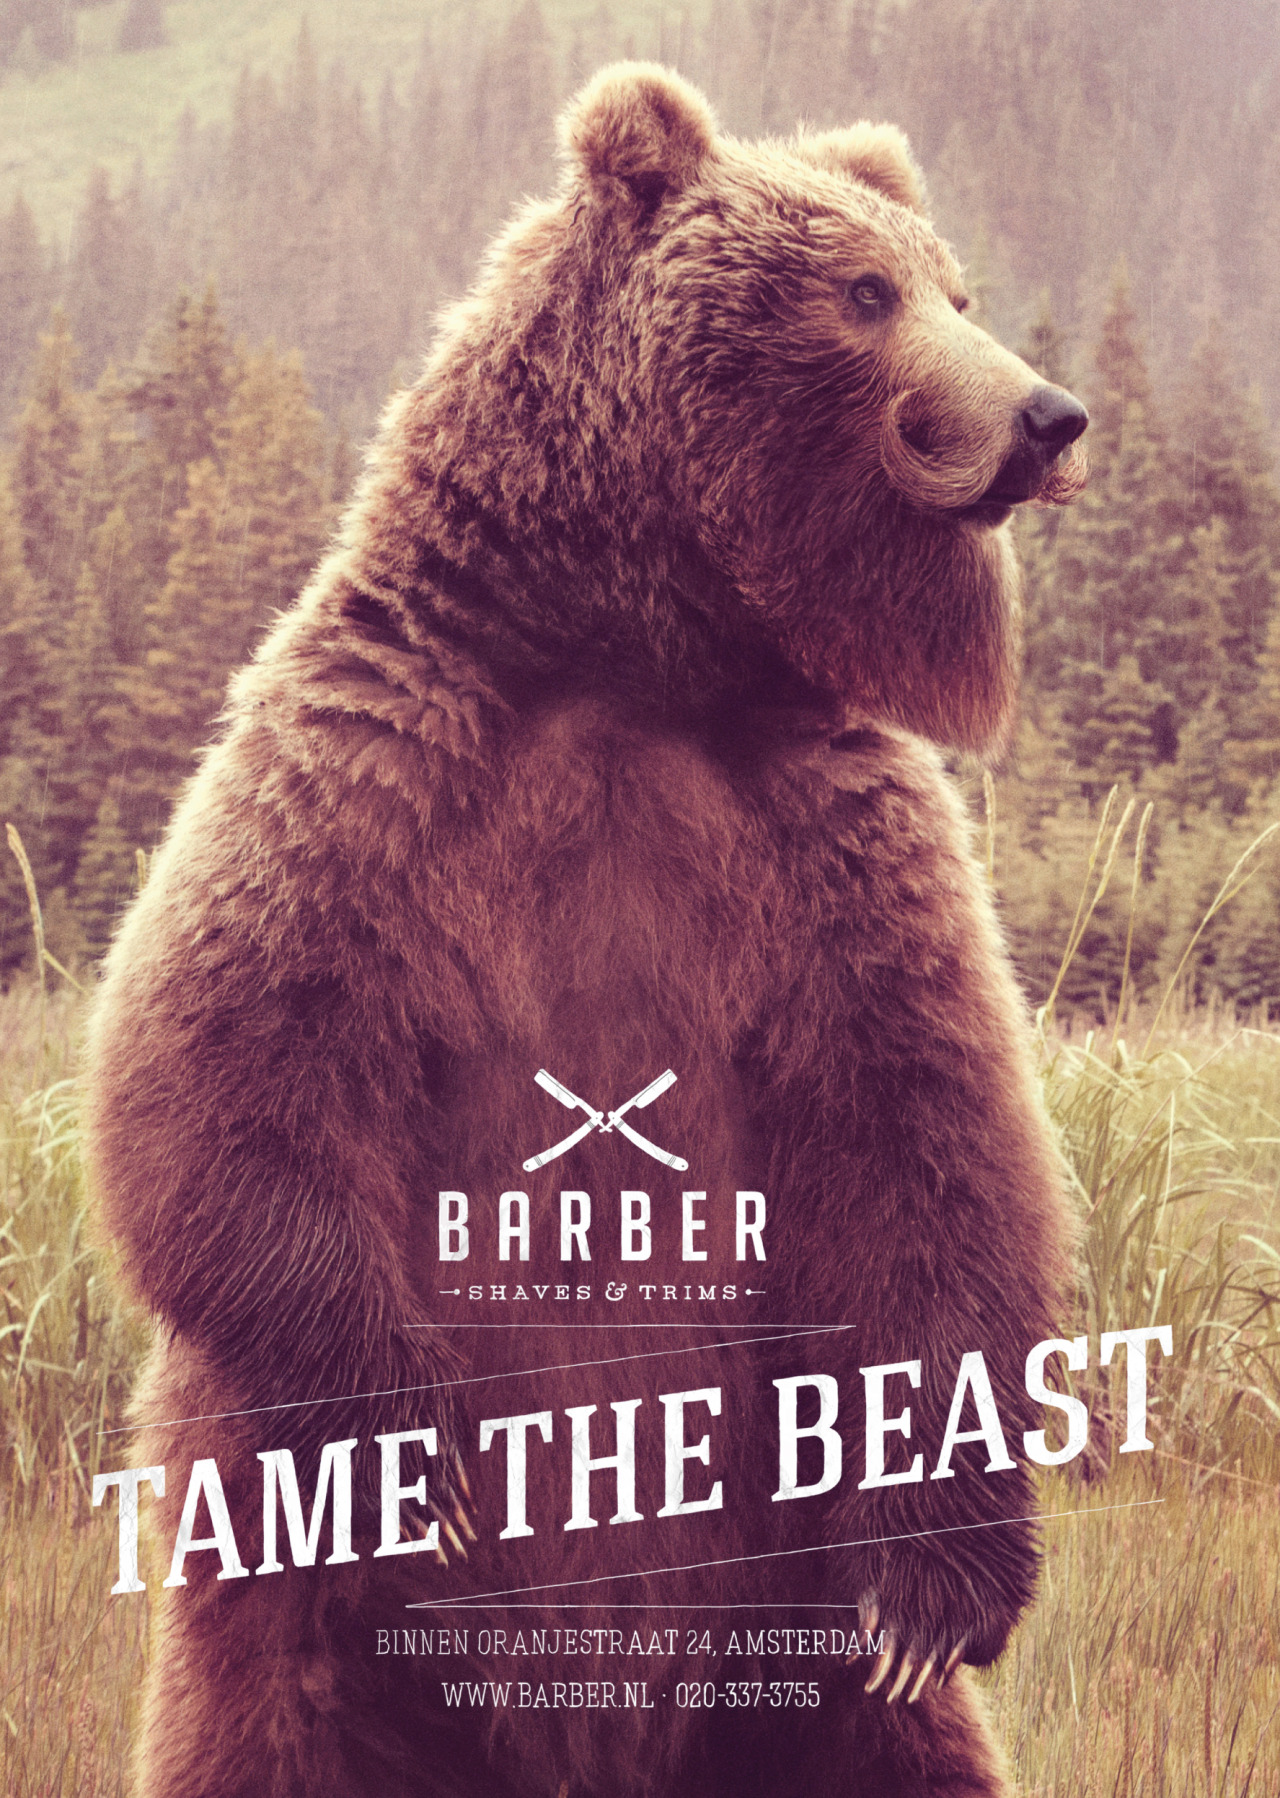 helloyoucreatives:  Tame the beast by 180 Amsterdam.